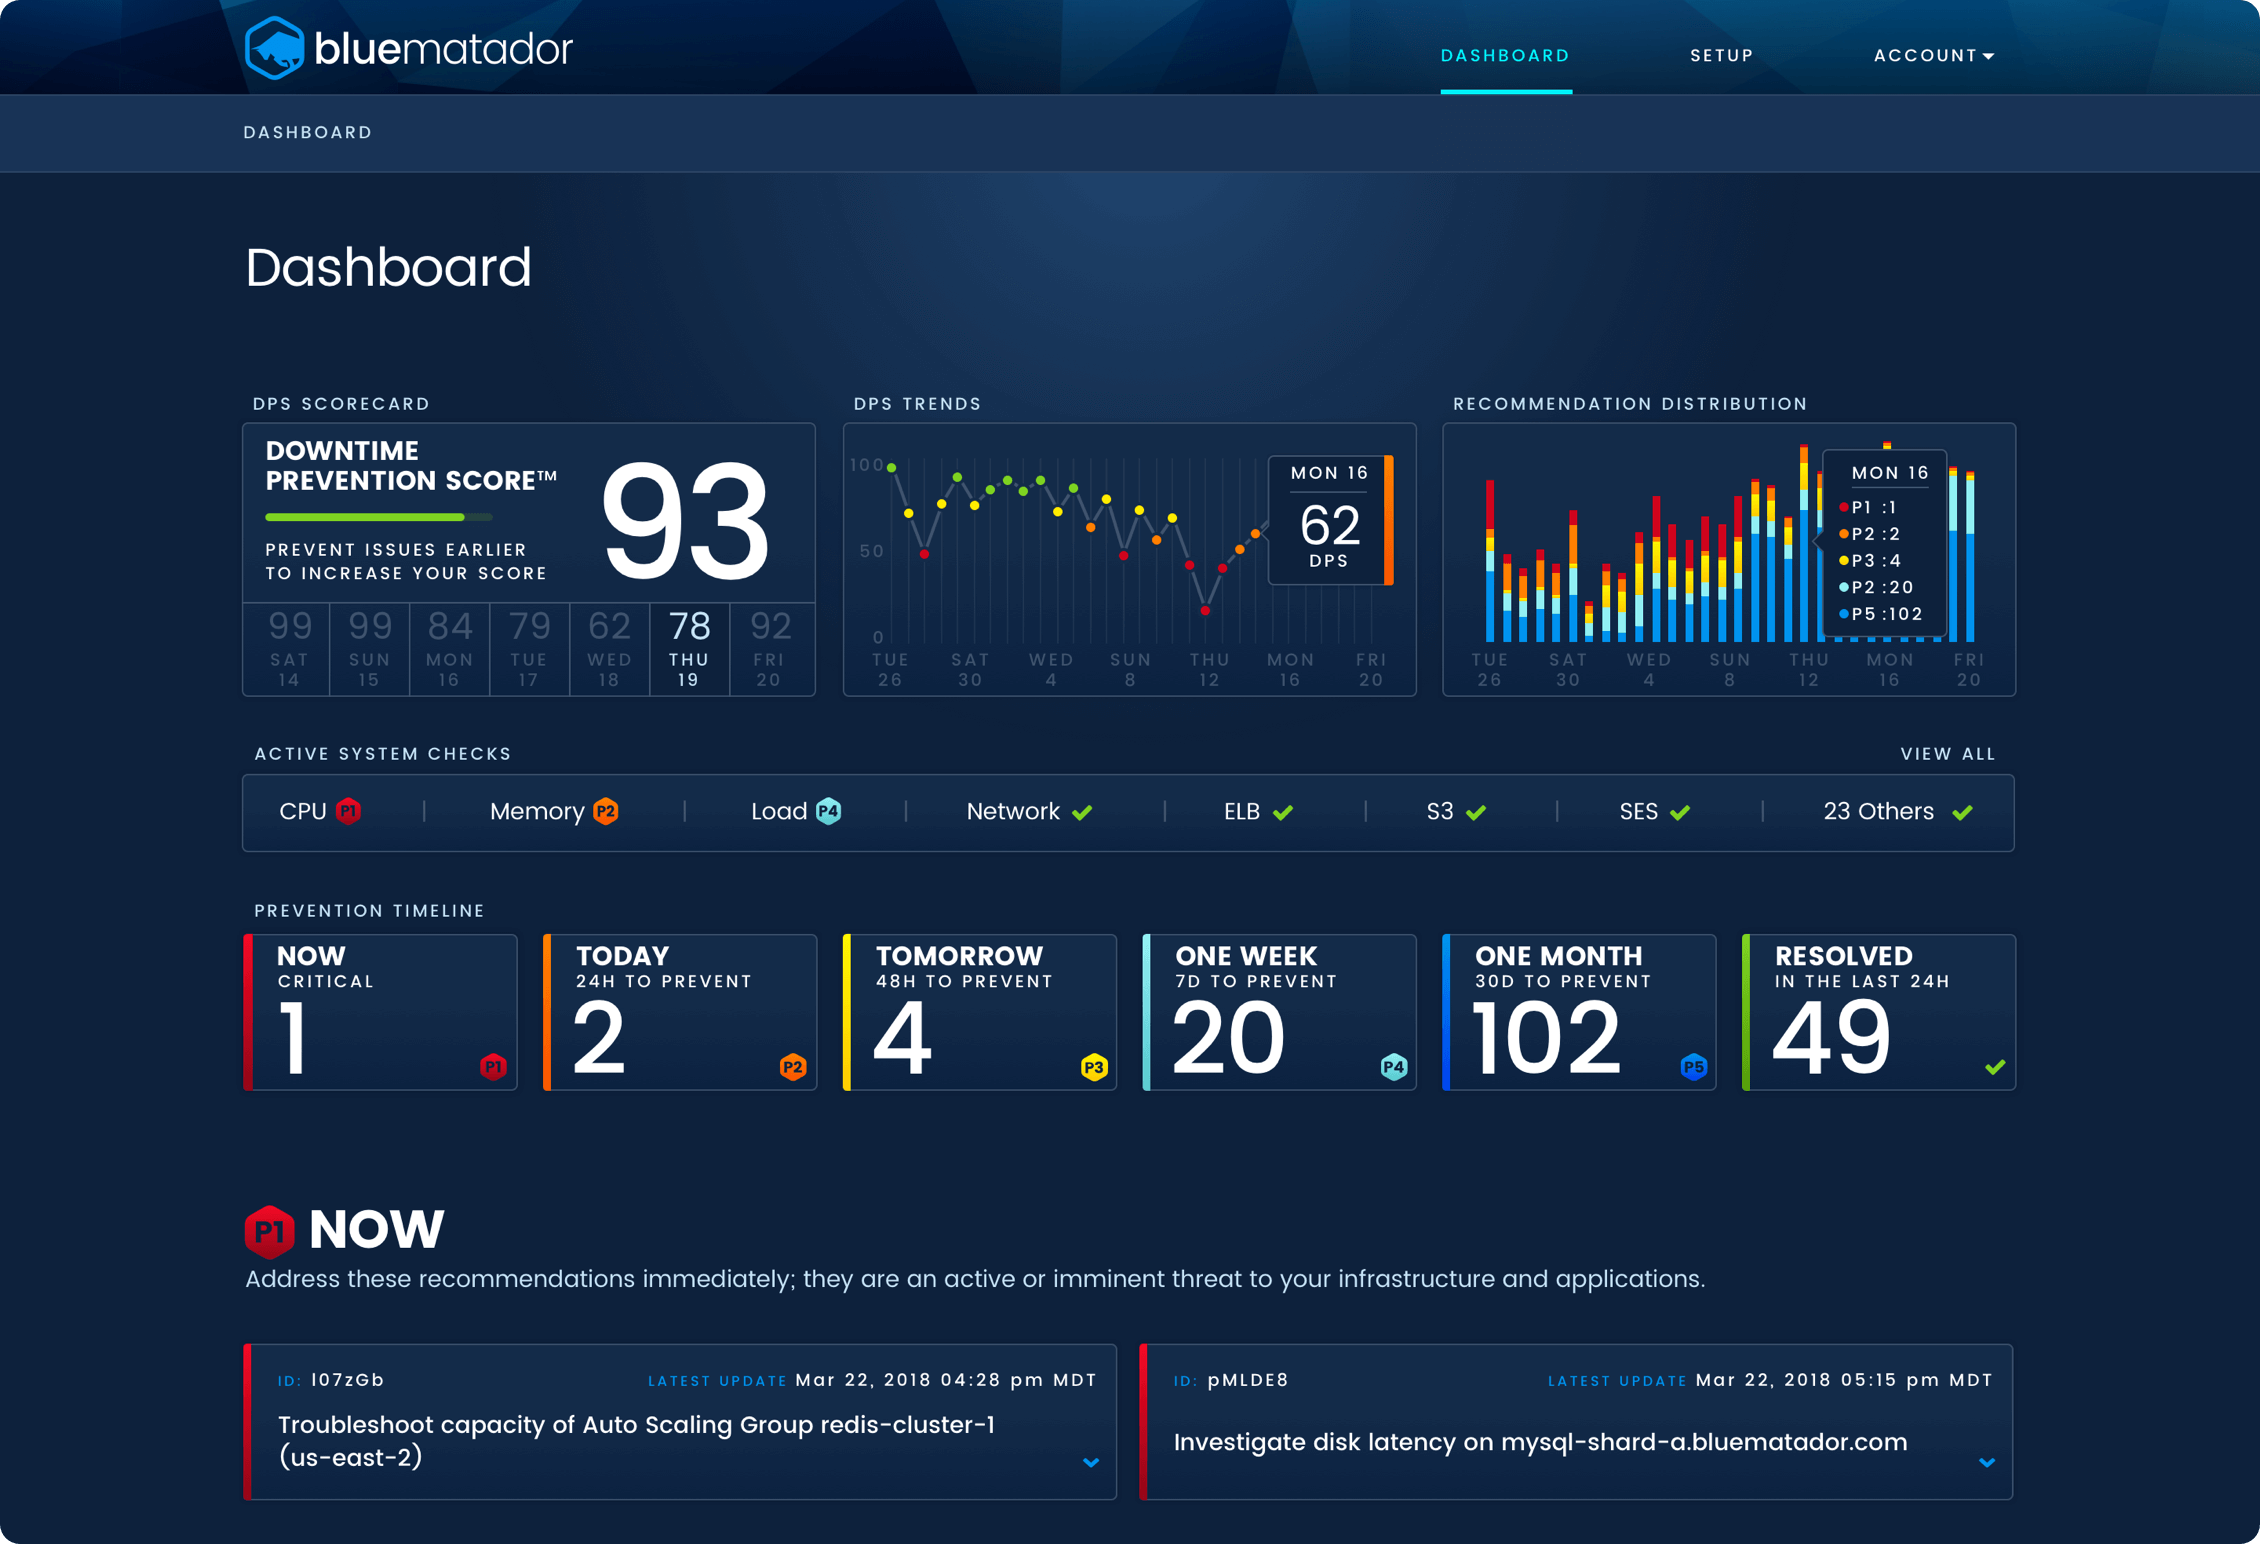 Introducing the New Blue Matador: Your Dashboard with Specific Recommendations on Fixing and Preventing Downtime